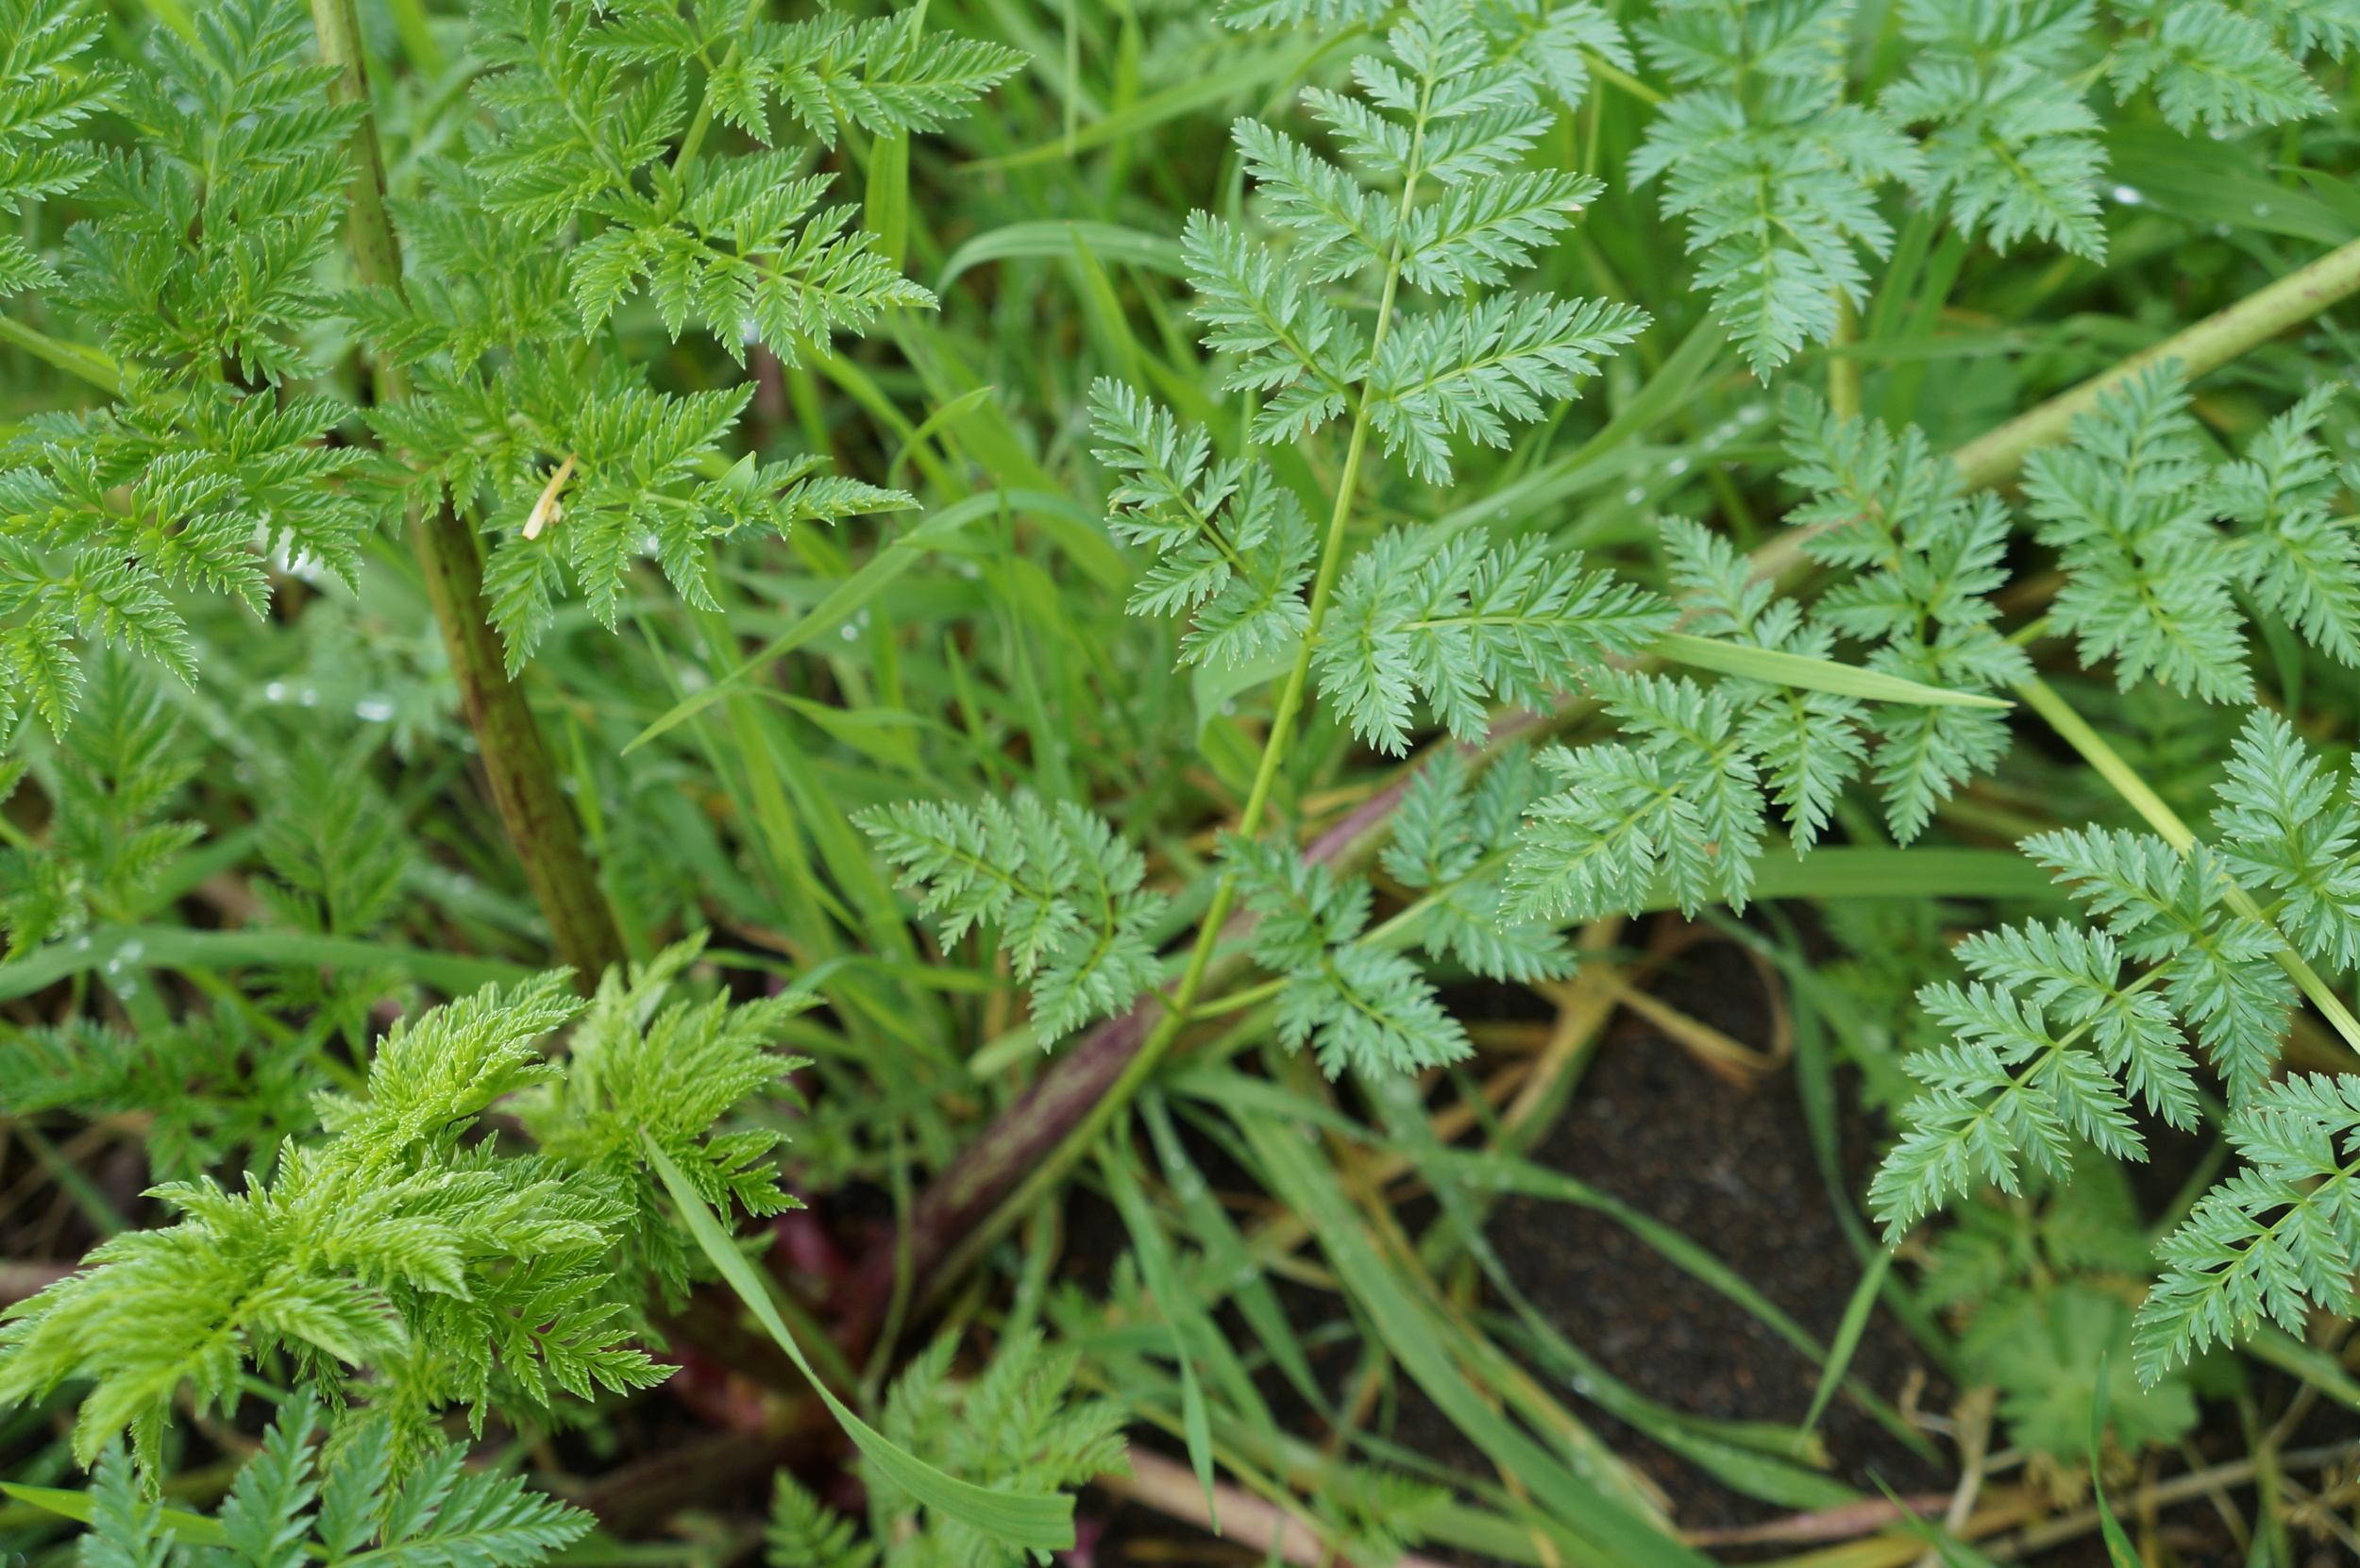 Conium maculatum / poison hemlock showing telltale purple blotchy stem base, though it still can be tough to ID from other carrot-family species such as cow-parsnip & Queen Anne's lace.